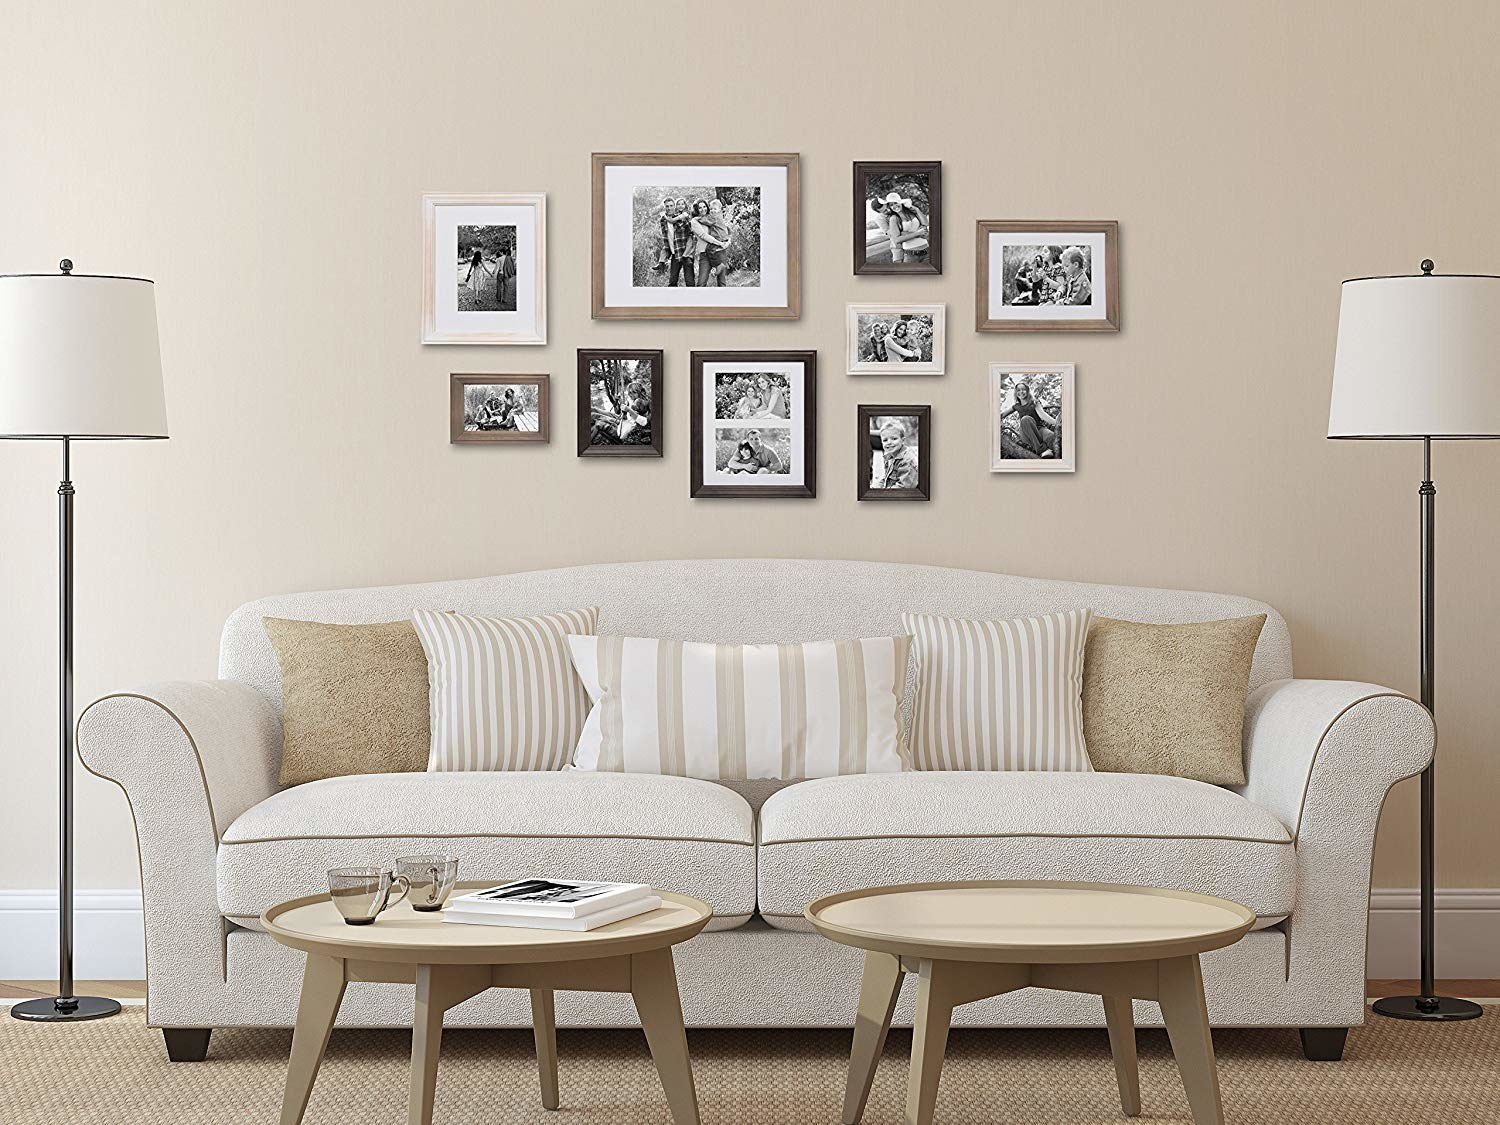 ten differently-sized frames on a wall over a couch arranged in a nice way